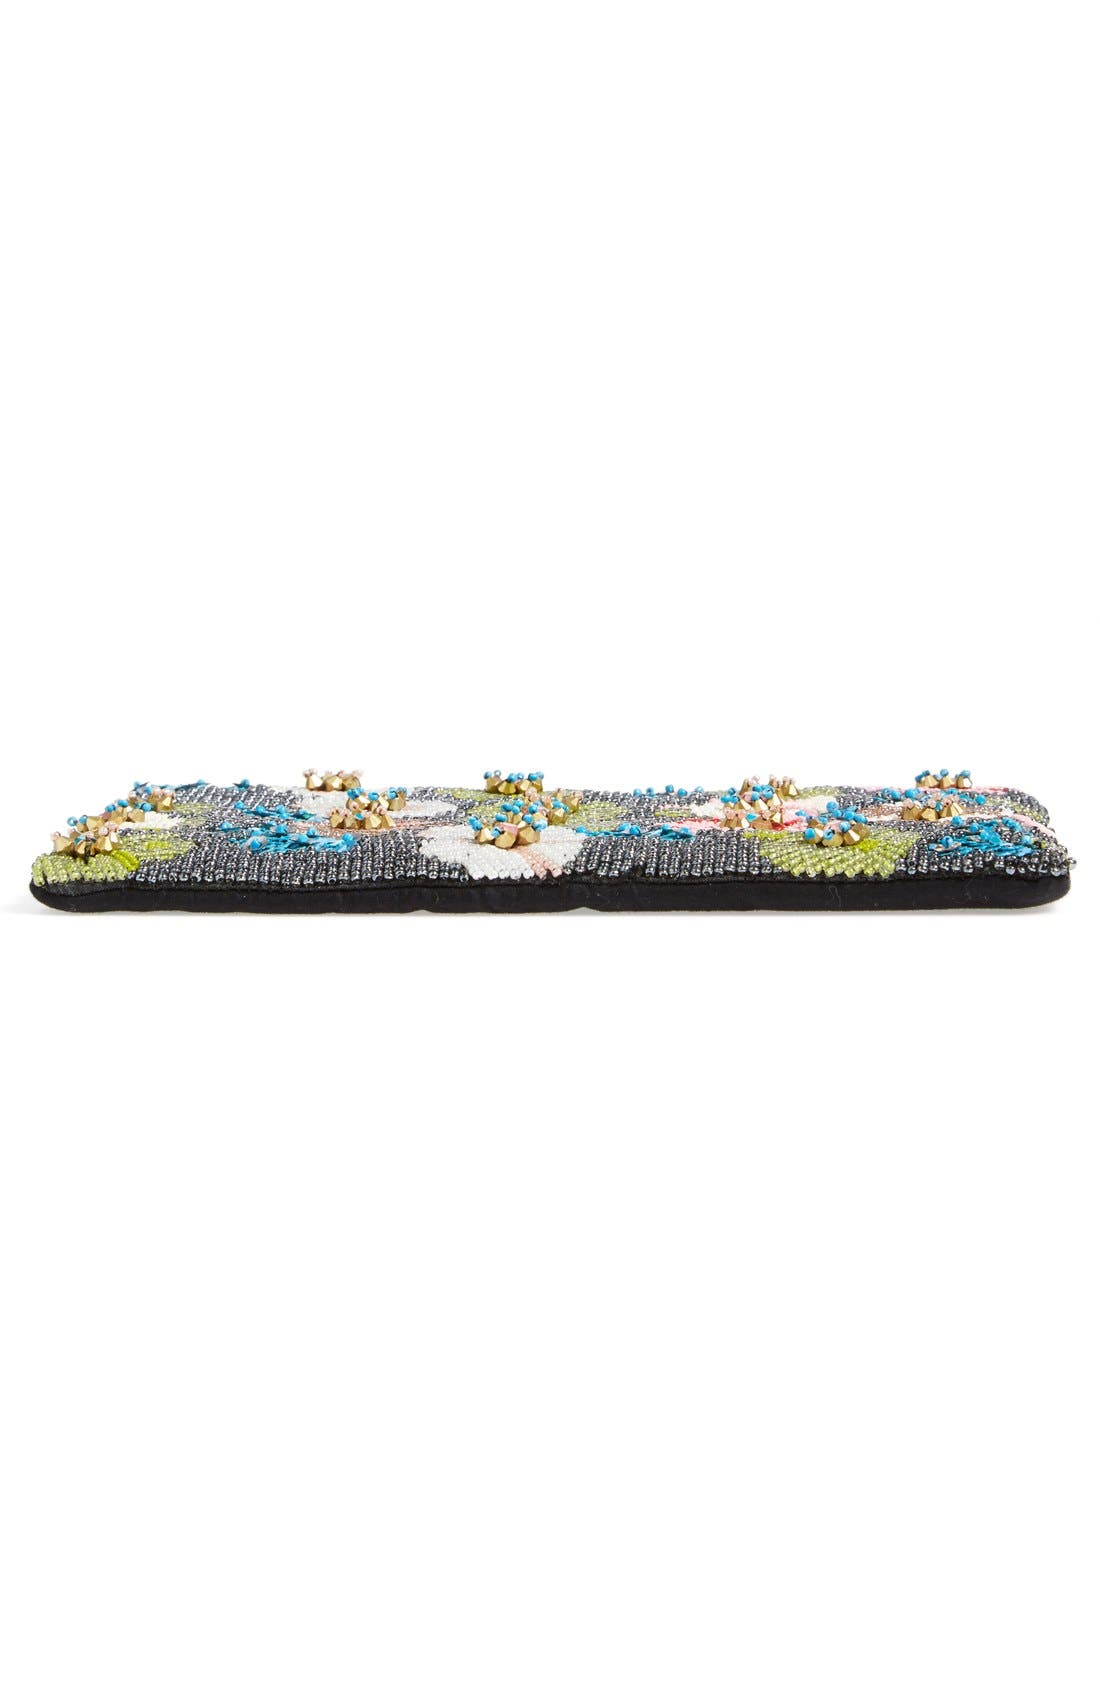 ,                             Natasha Couture Beaded Floral Clutch,                             Alternate thumbnail 6, color,                             650